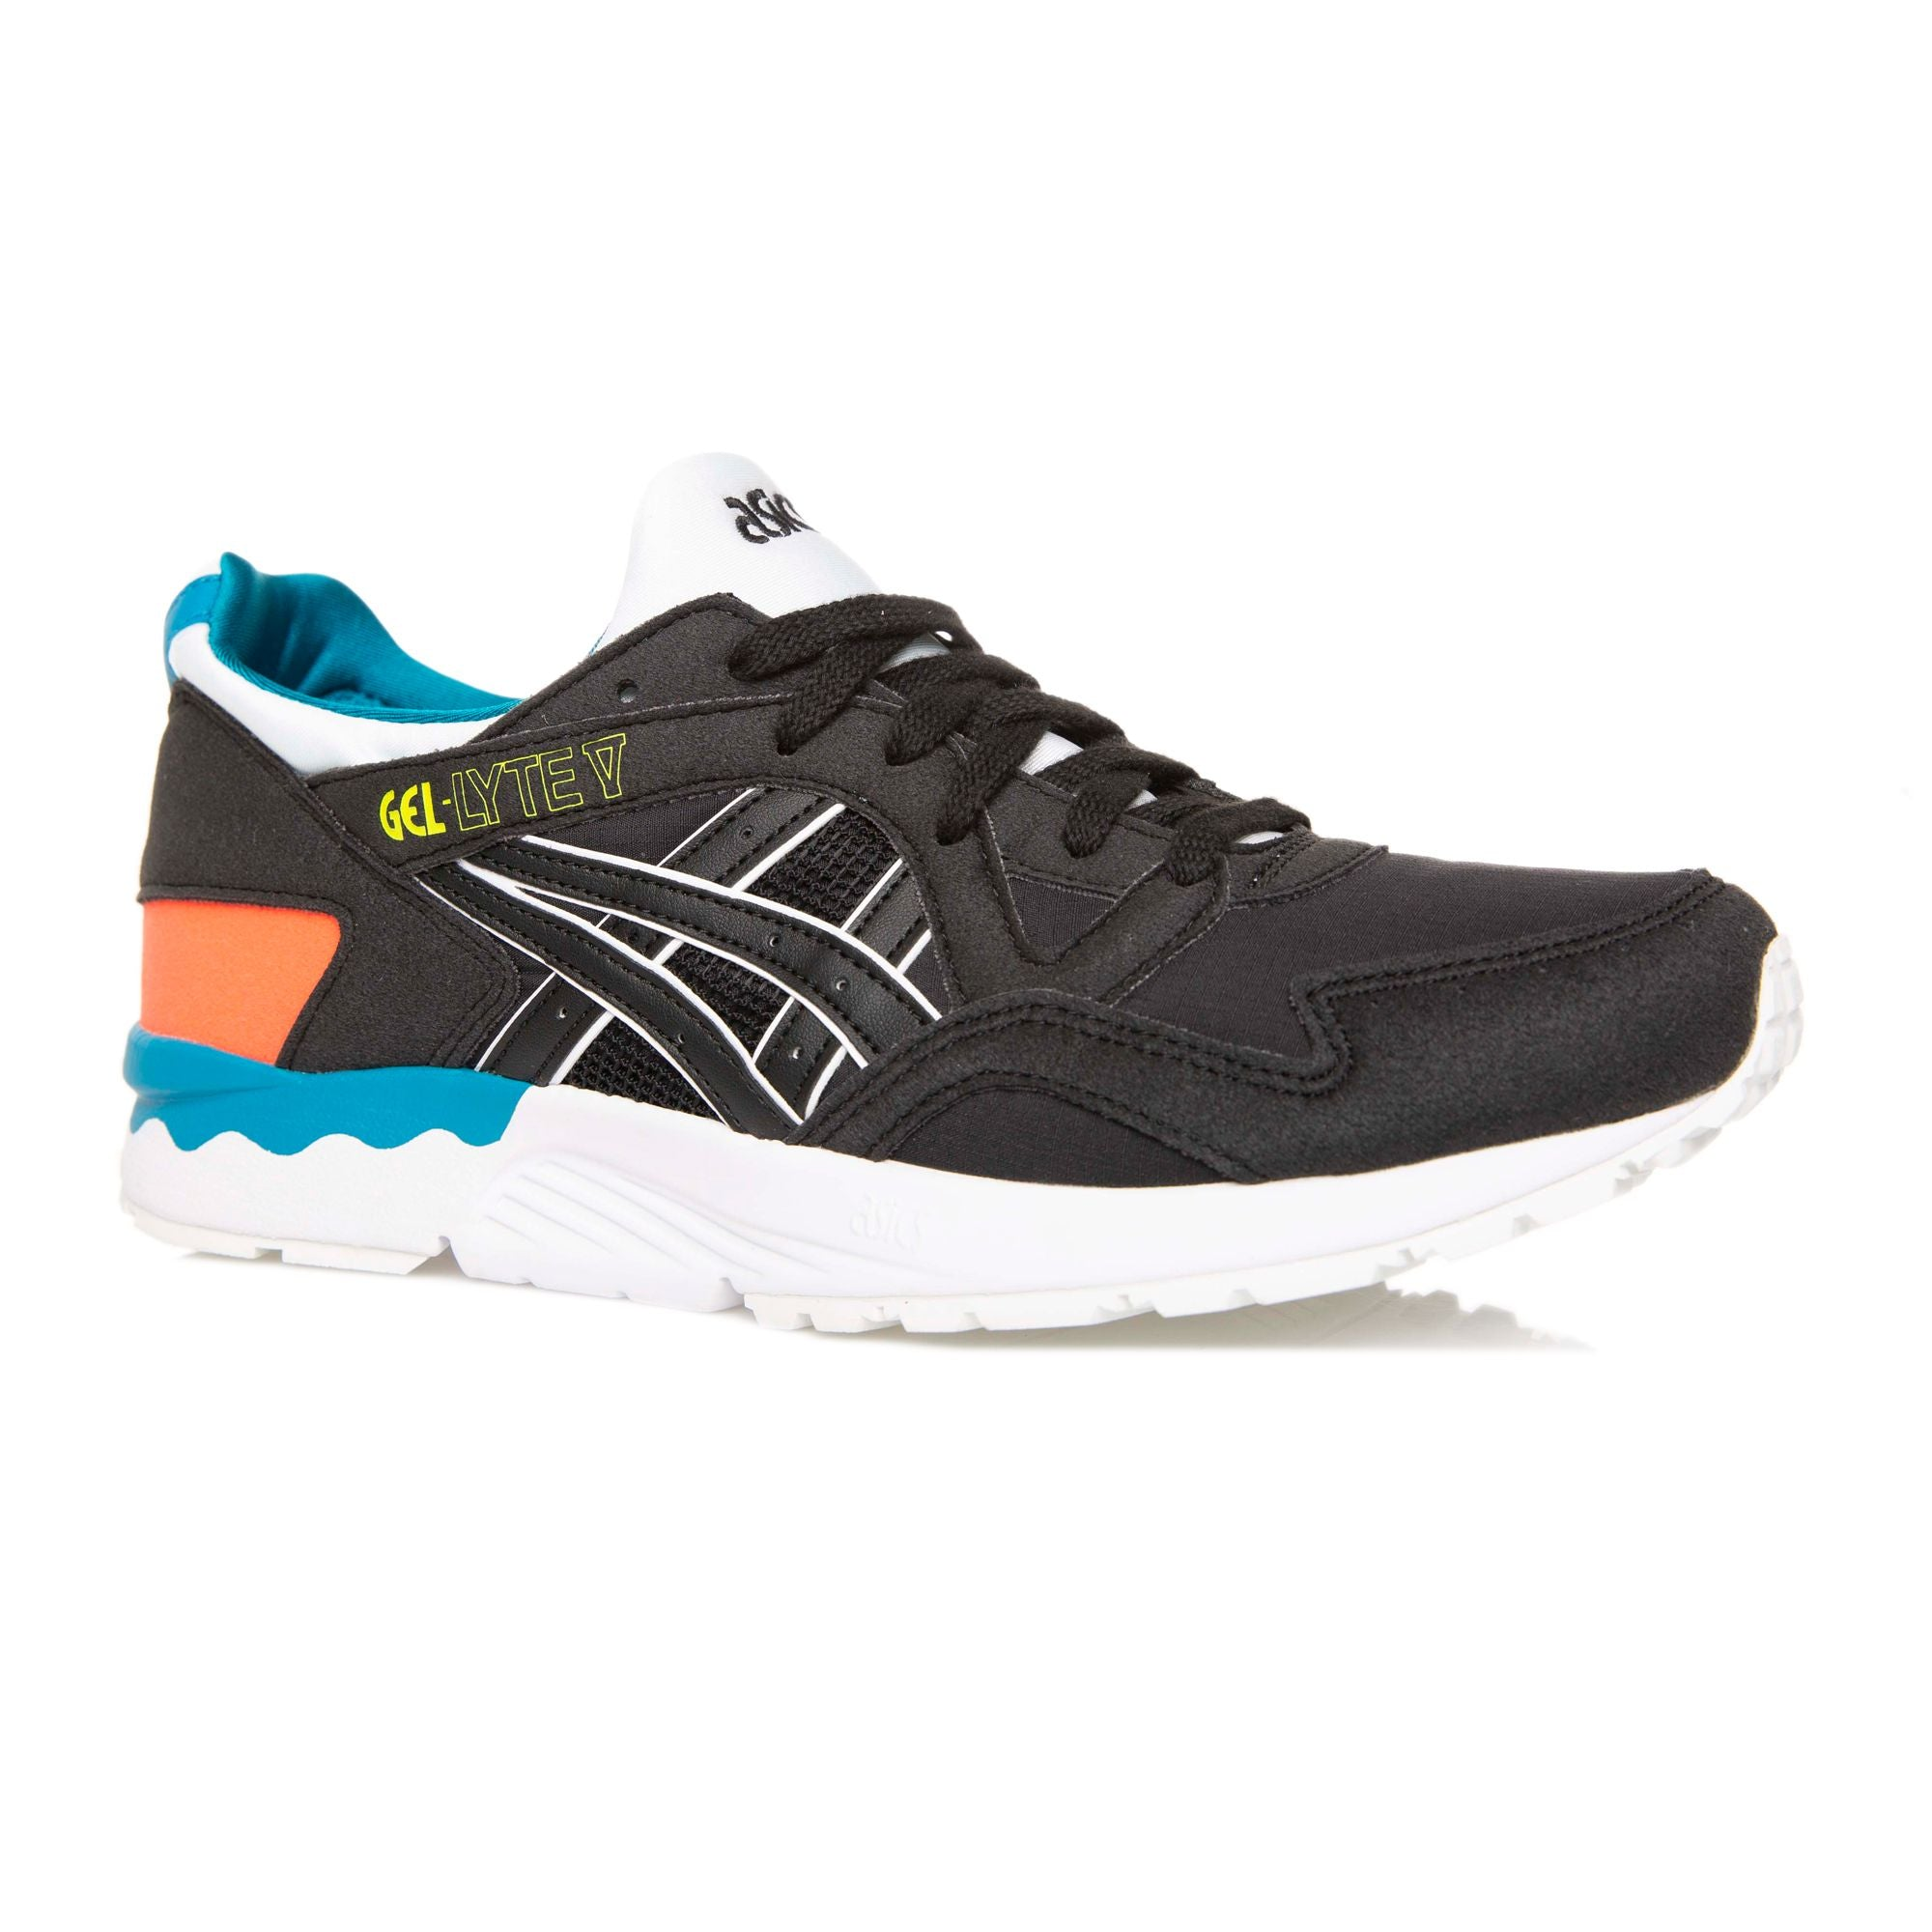 GEL-LYTE V - Black/Black